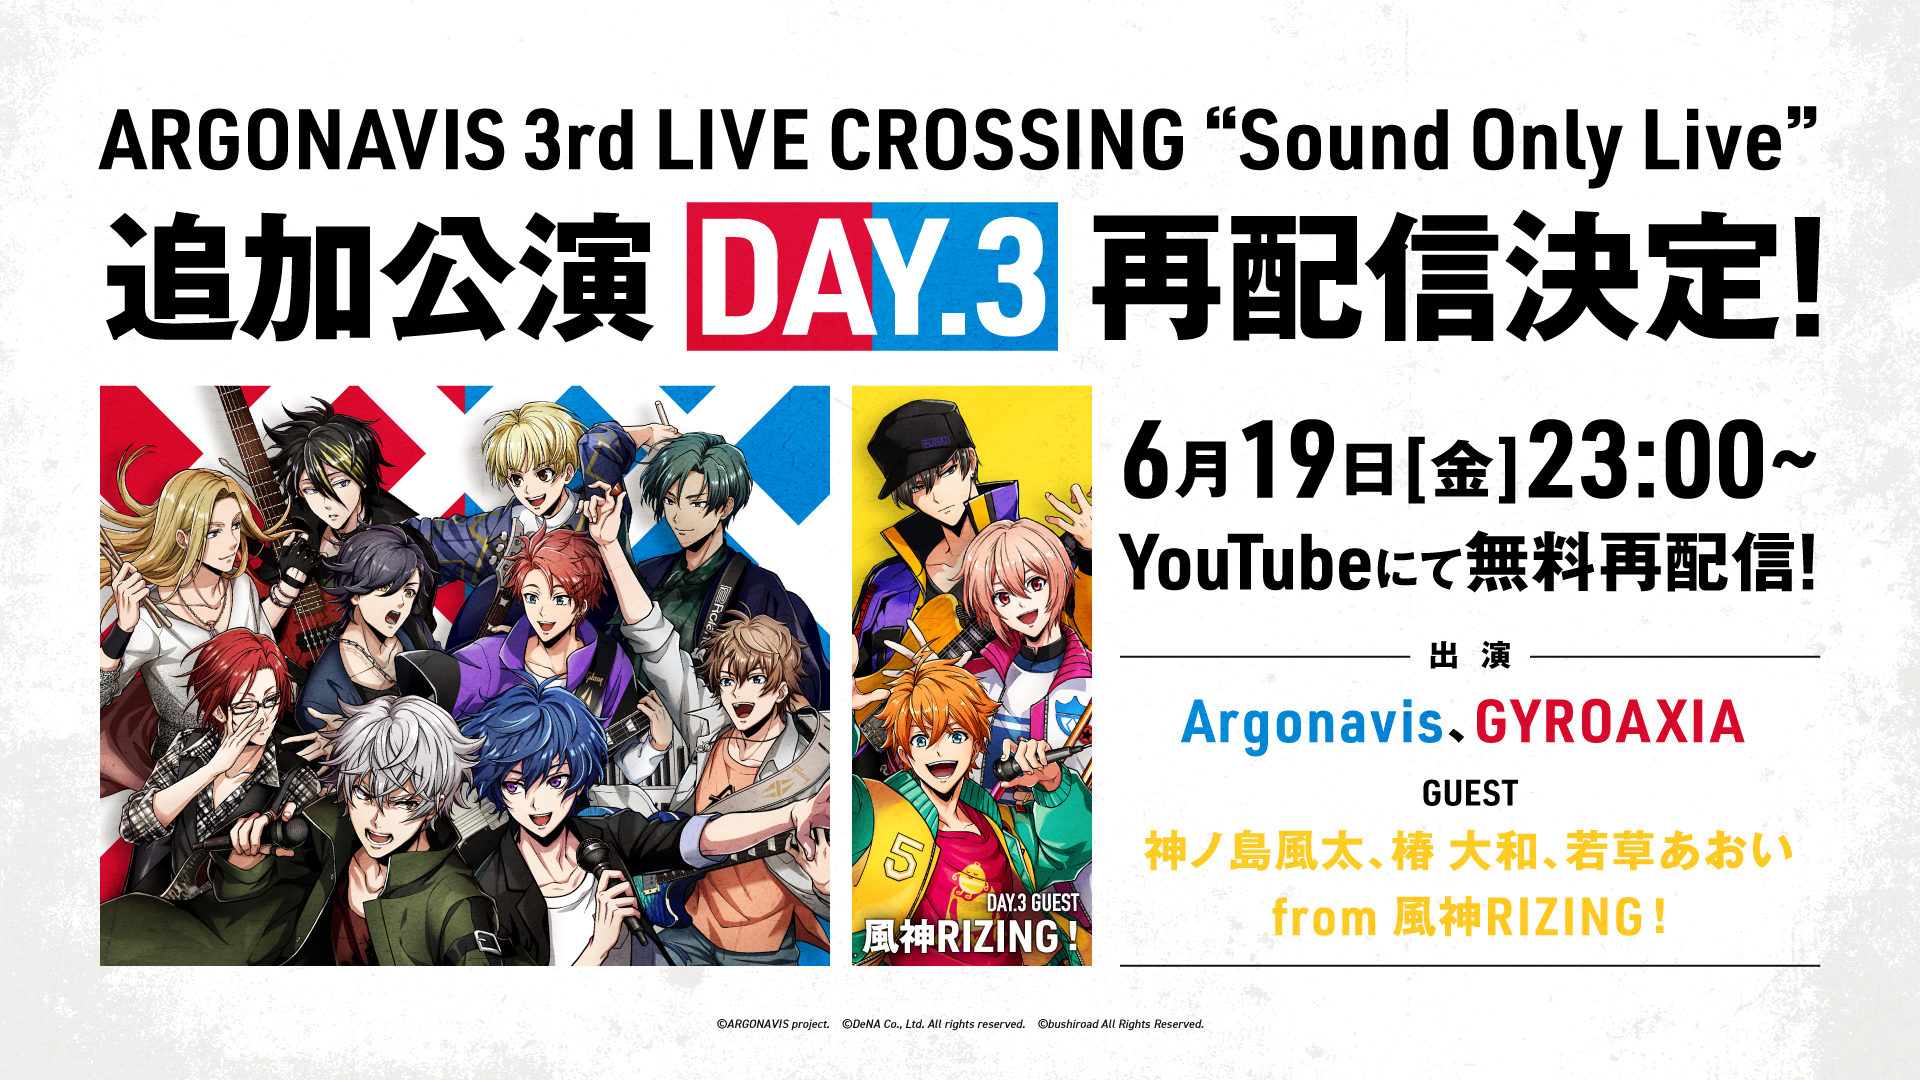 """Sound Only Live""追加公演DAY.3配信決定!"